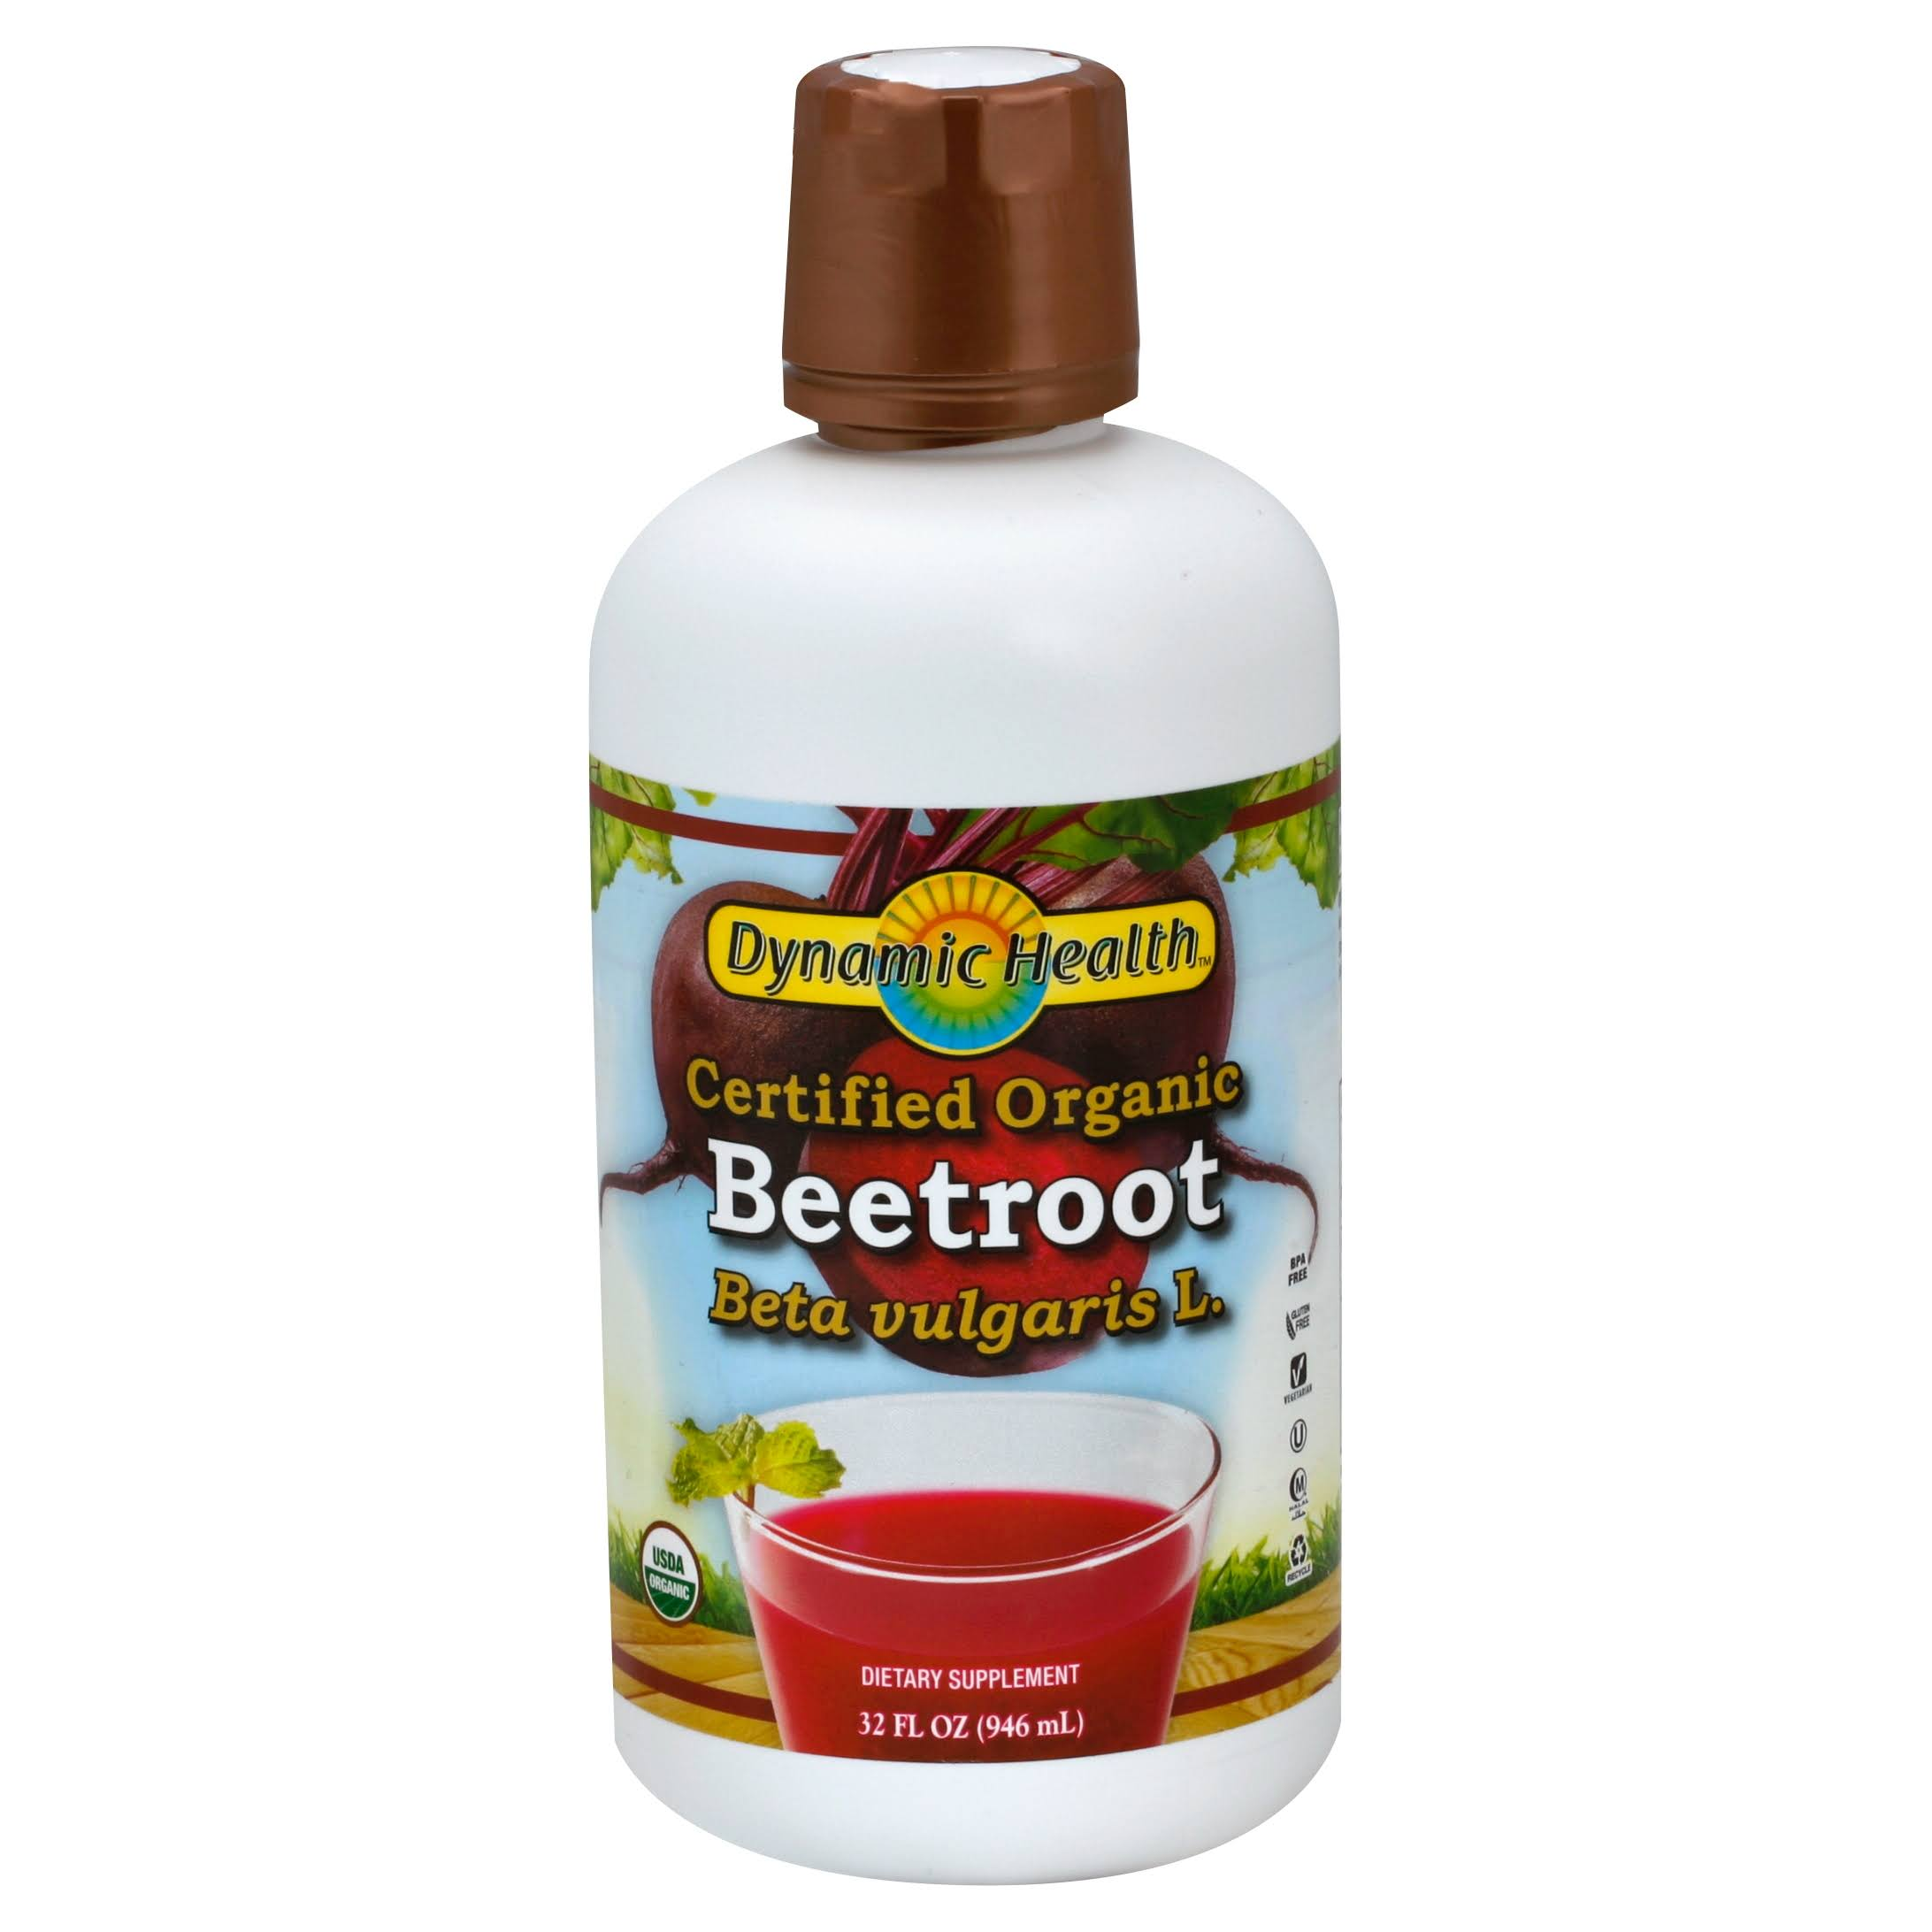 Dynamic Health Beetroot Juice - 32oz